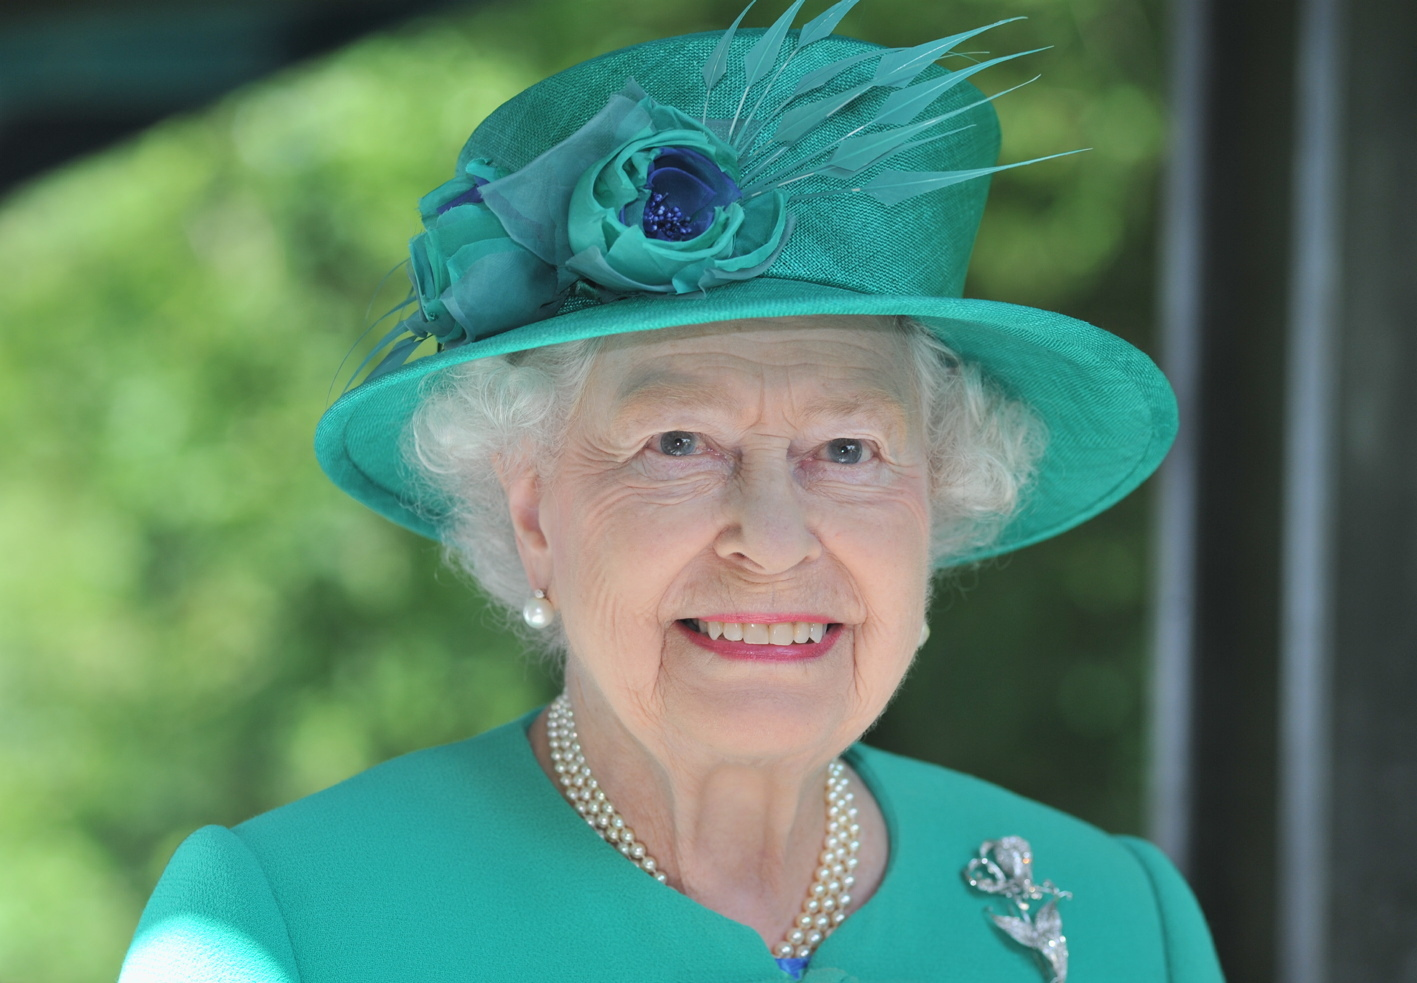 A portrait of The Queen during her visit to the Lake District in July 2013 (Gazette library picture)